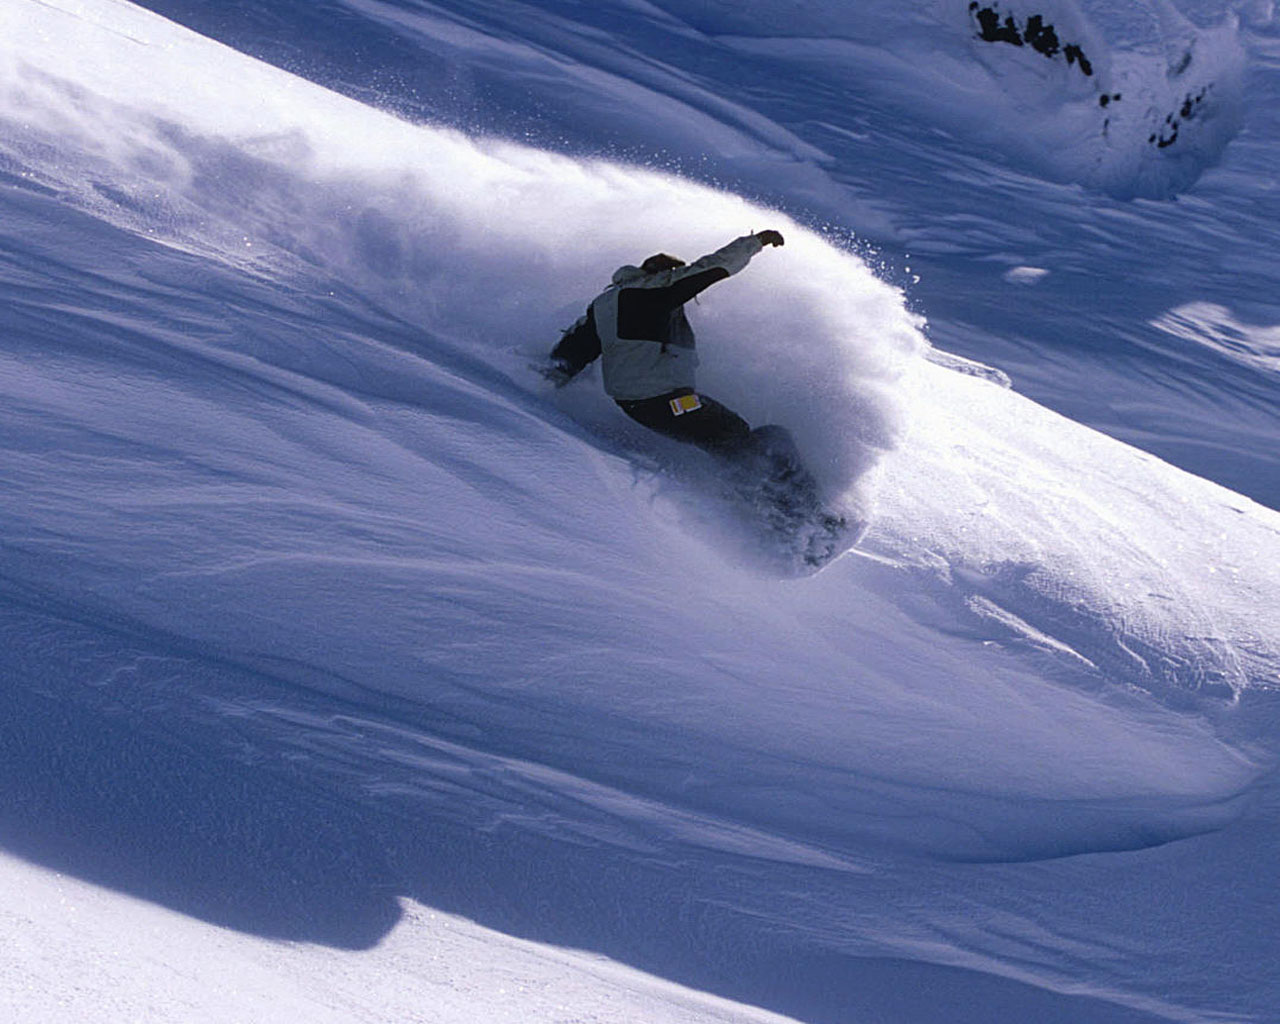 Stunning Snowboarding Wallpapers | Snowboarding Days ...